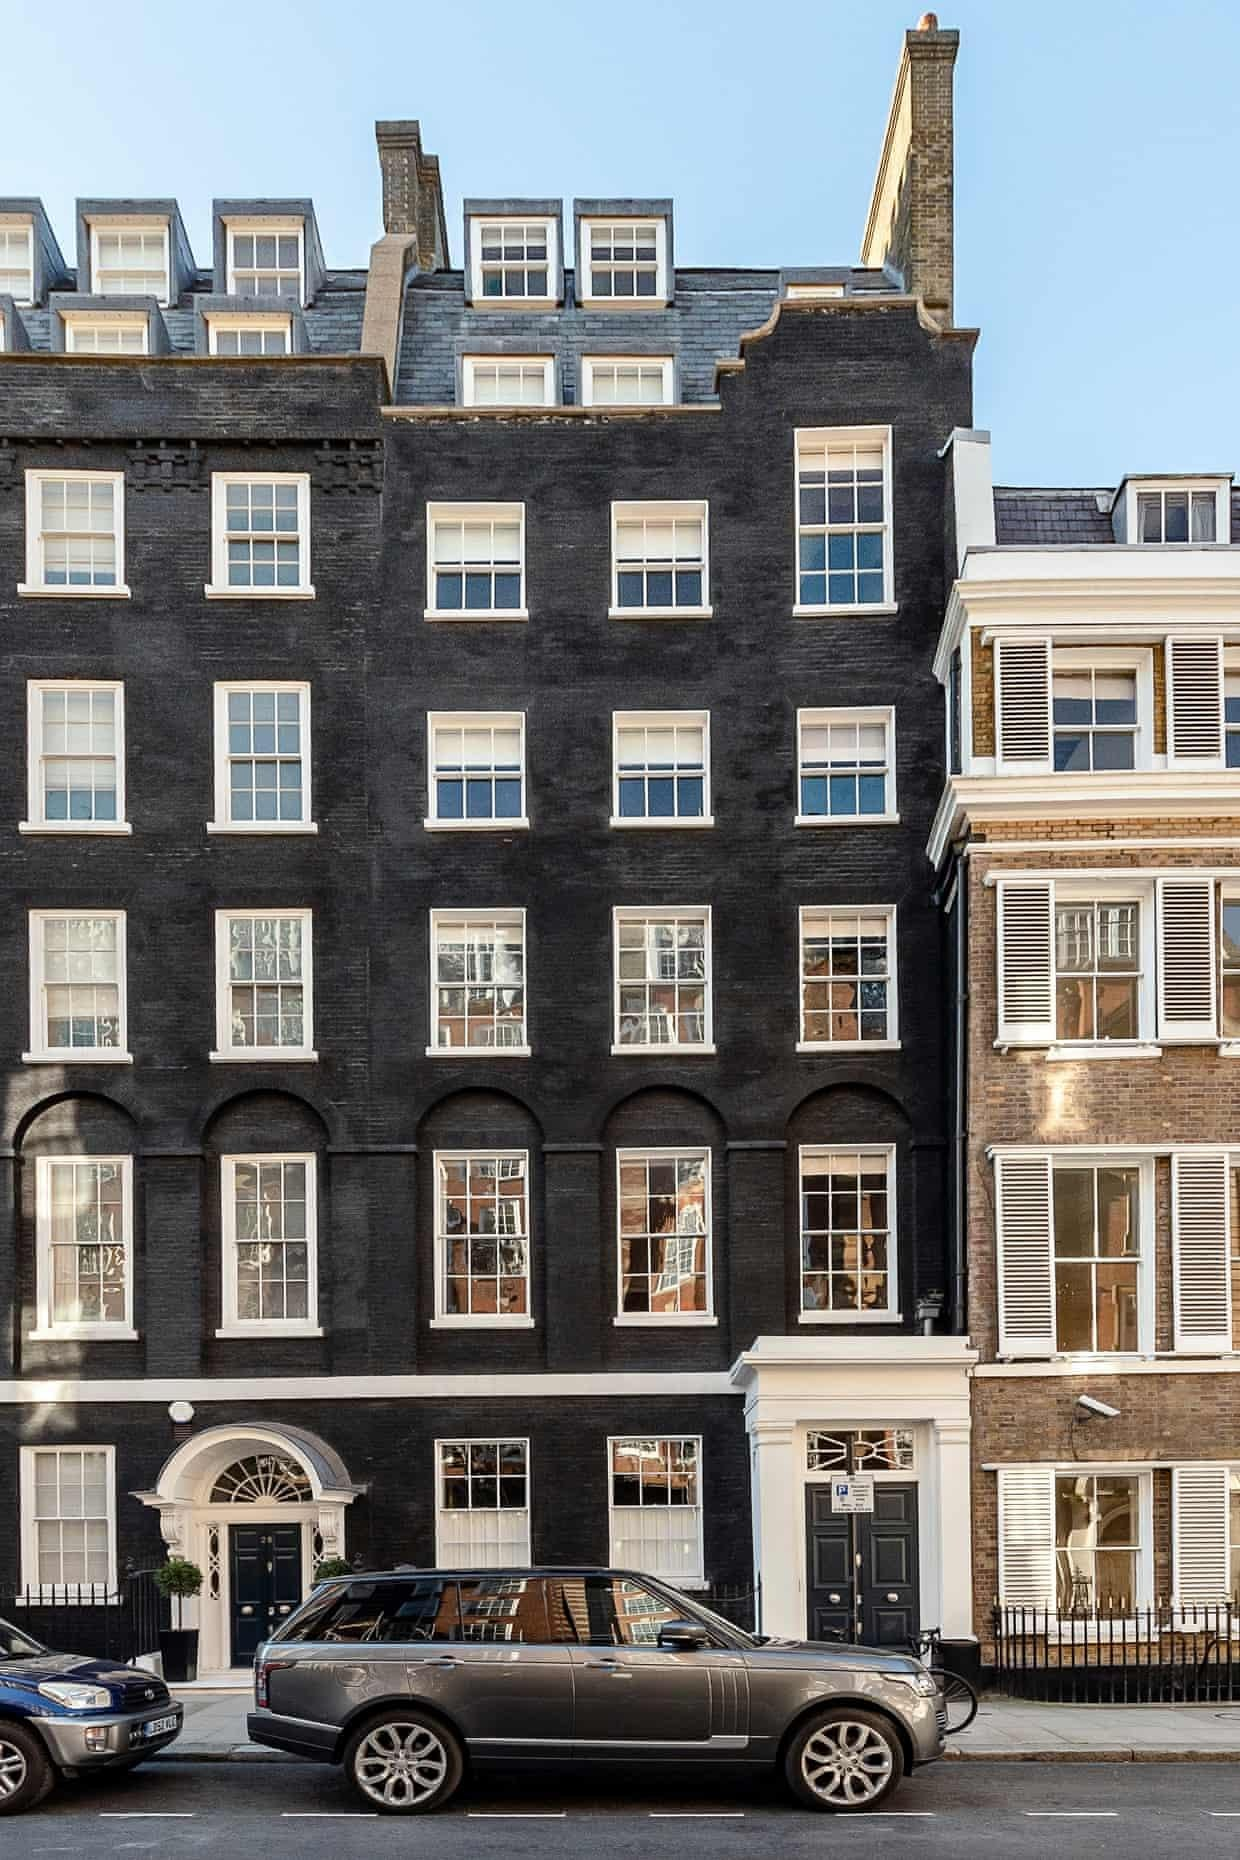 What is driving the demand for high-end homes in London?